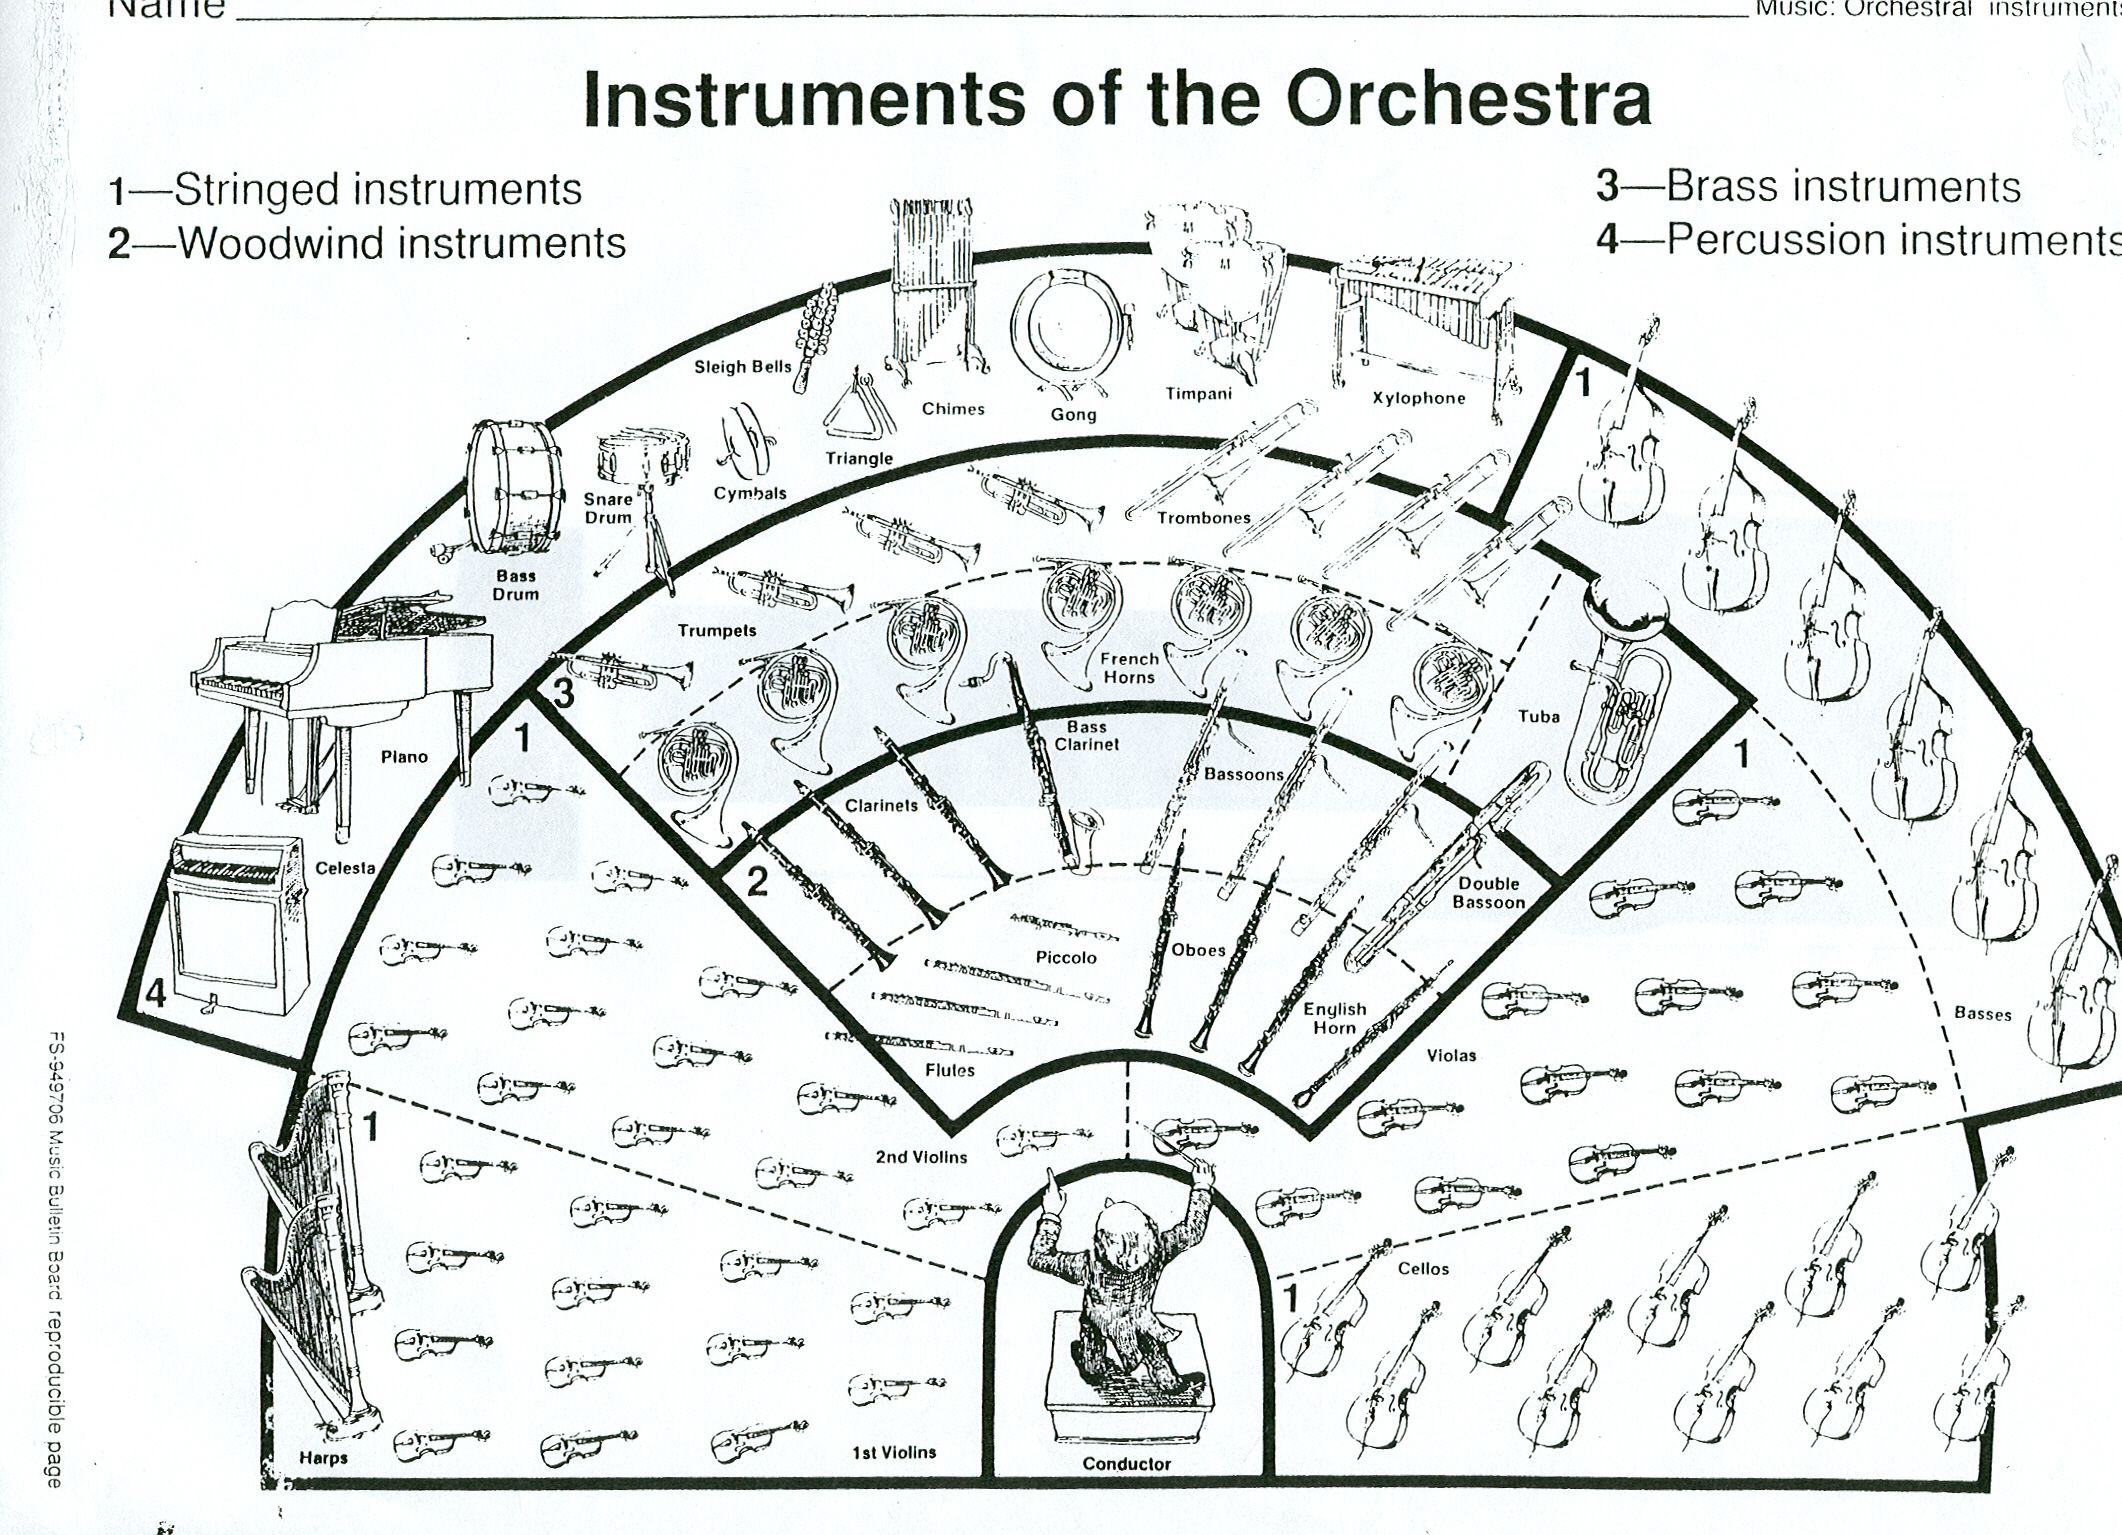 Pin Di Amanda Hinson Su Learning About The Symphony Orchestra